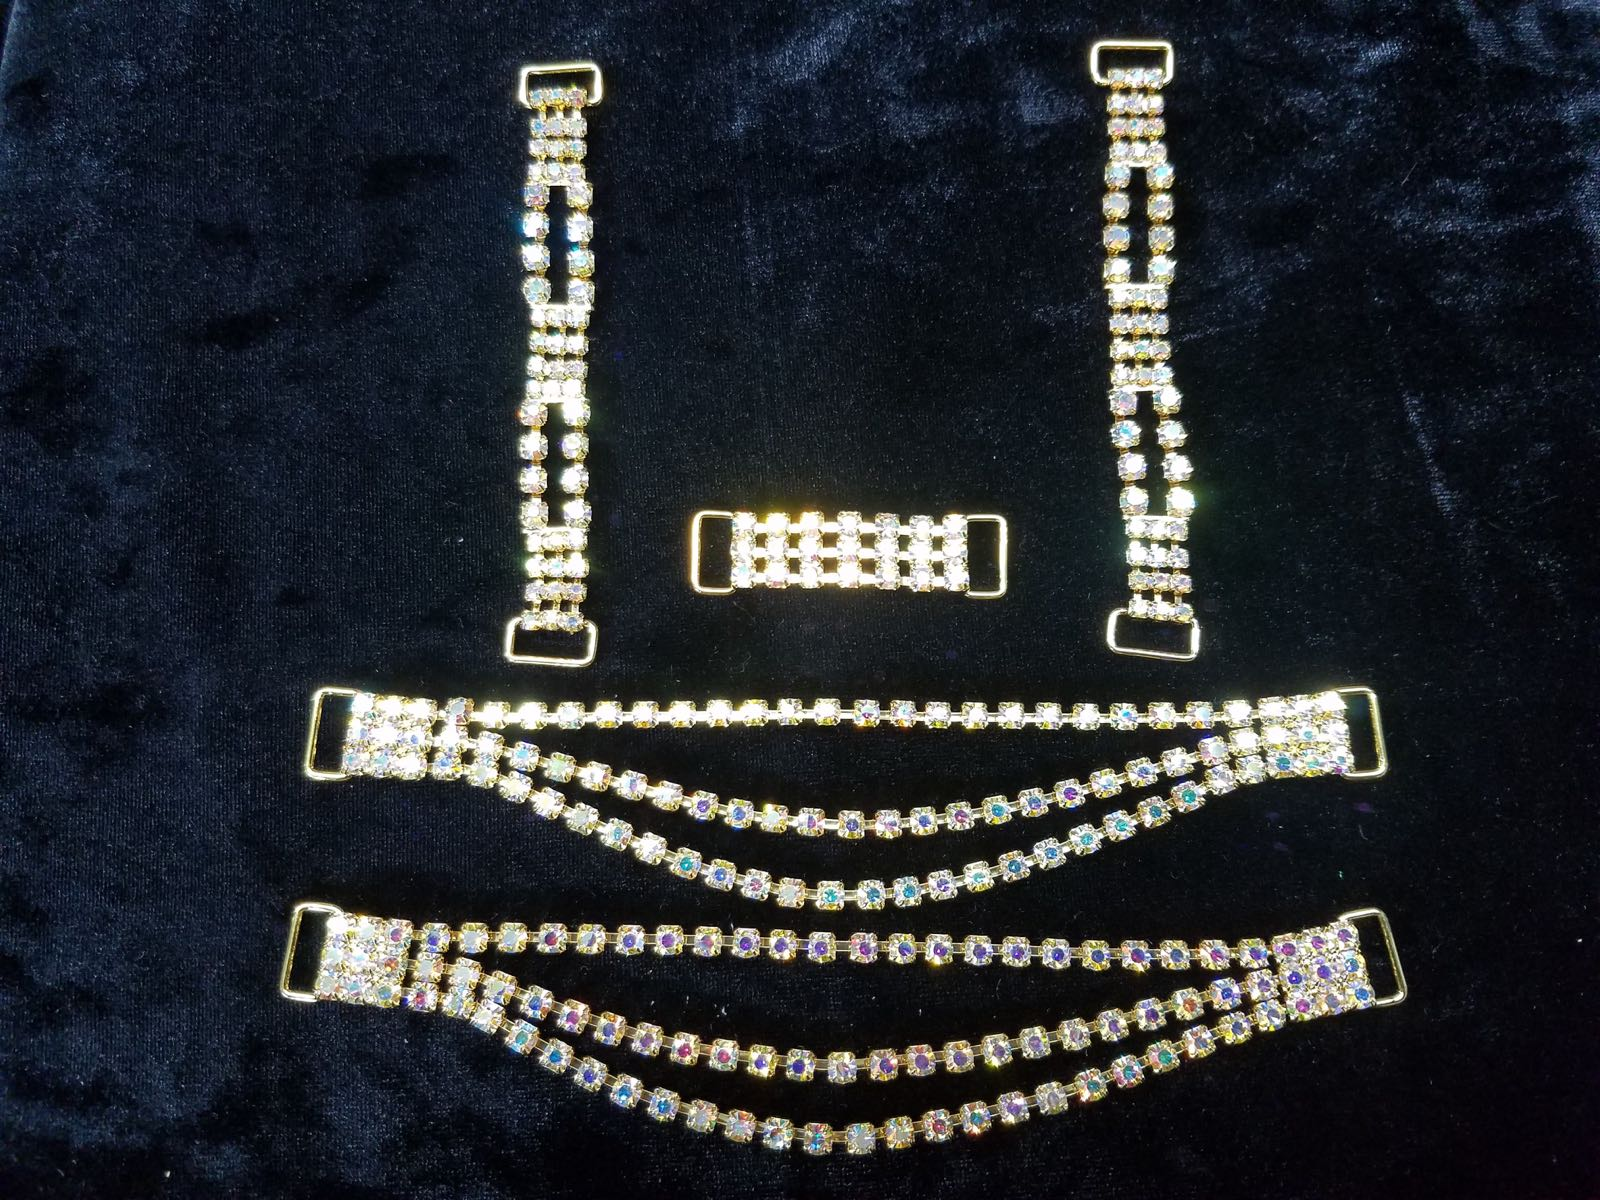 Set J, Gold with clear aurora borealis crystals, $45